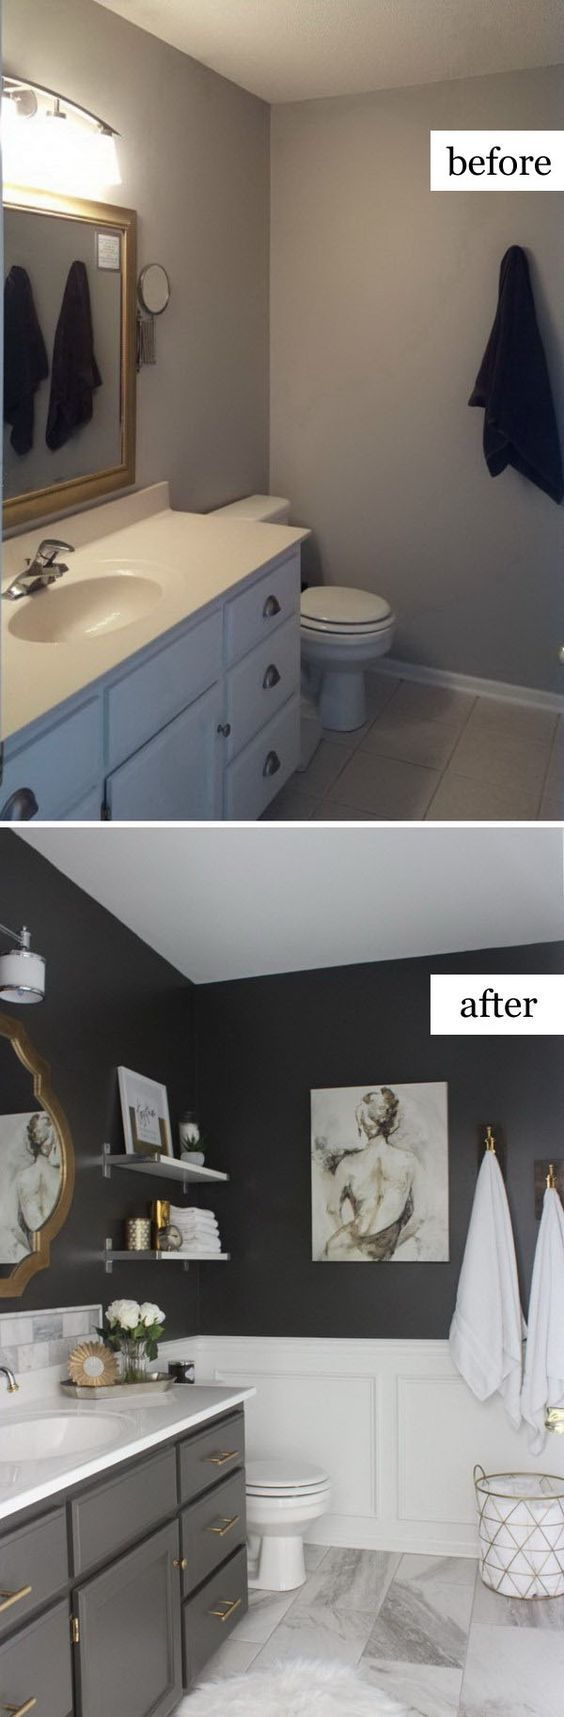 Bathroom Makeover Kit before and after: 20+ awesome bathroom makeovers | master